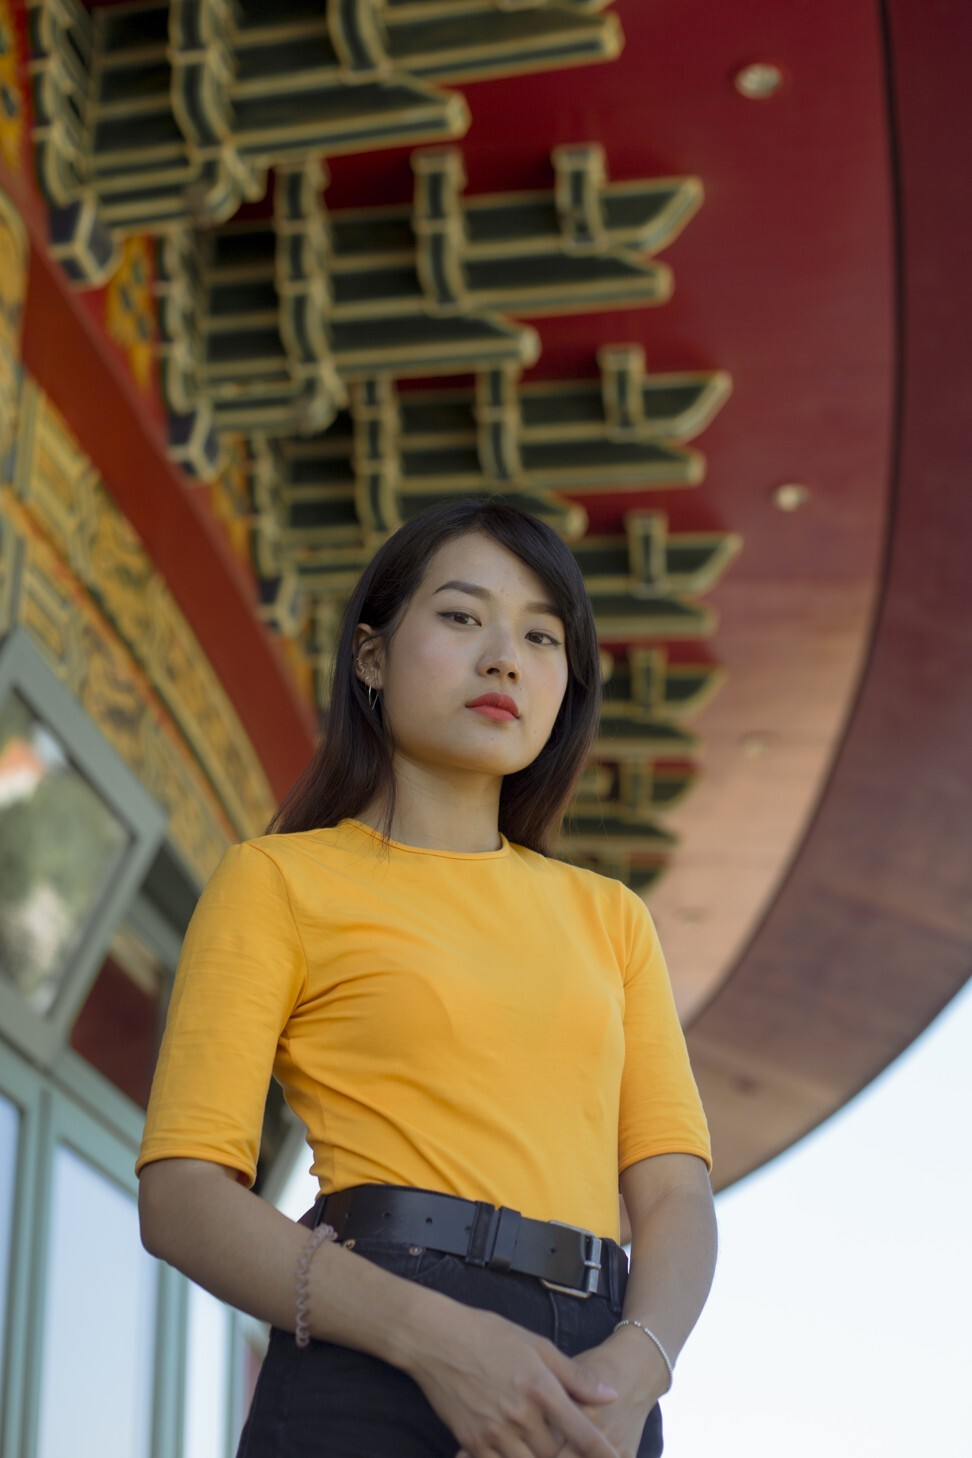 28-year-old Thanh Thu was born and raised in Berlin but says she has experienced racism regularly. Photo: Irma Fadhila